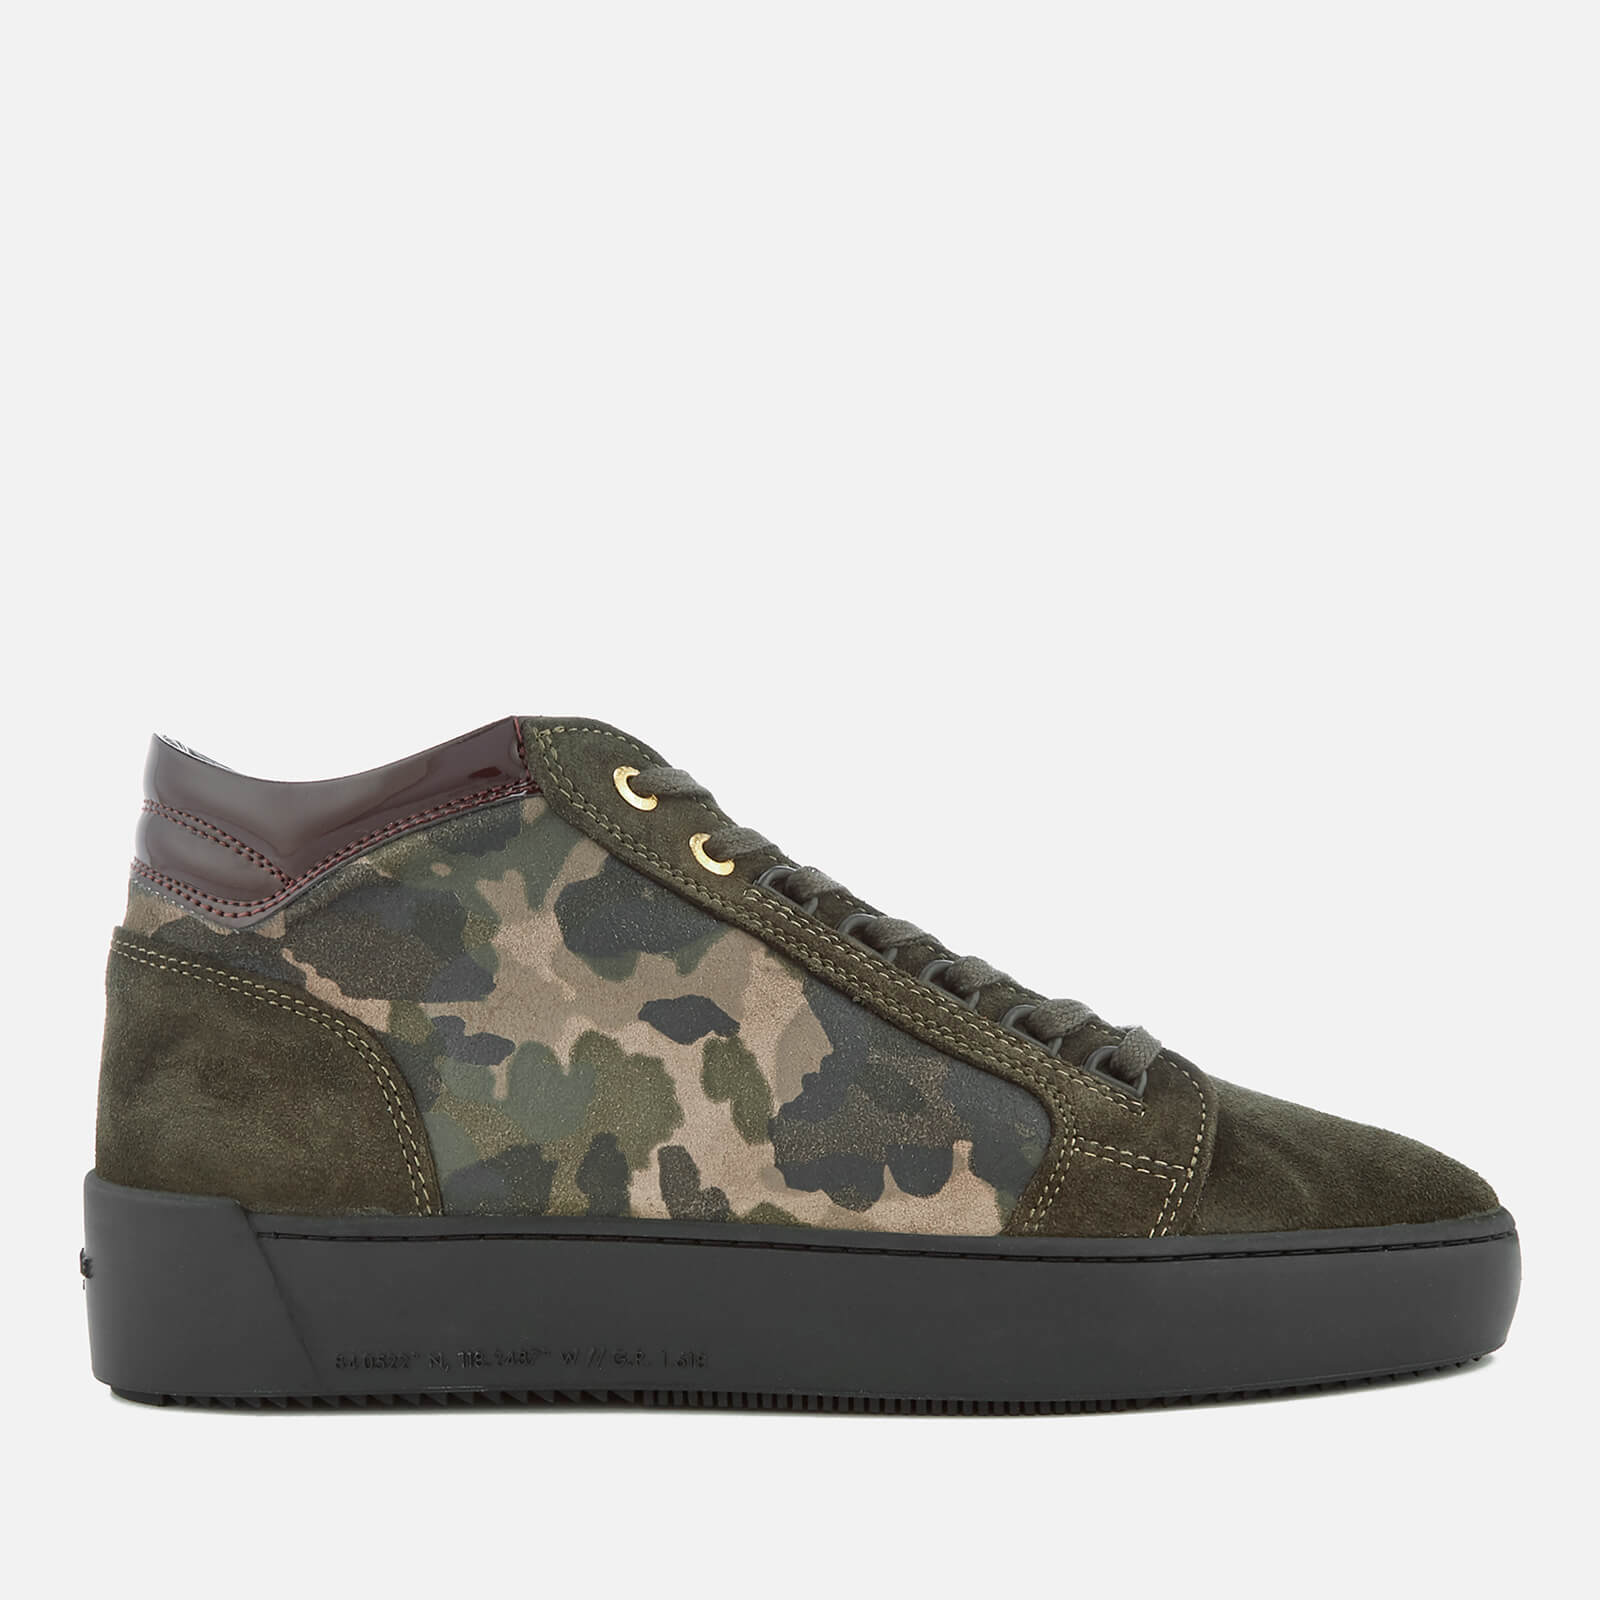 62e4e30e82c8 Android Homme Men s Propulsion Mid Camouflage Trainers - Camo - Free UK  Delivery over £50